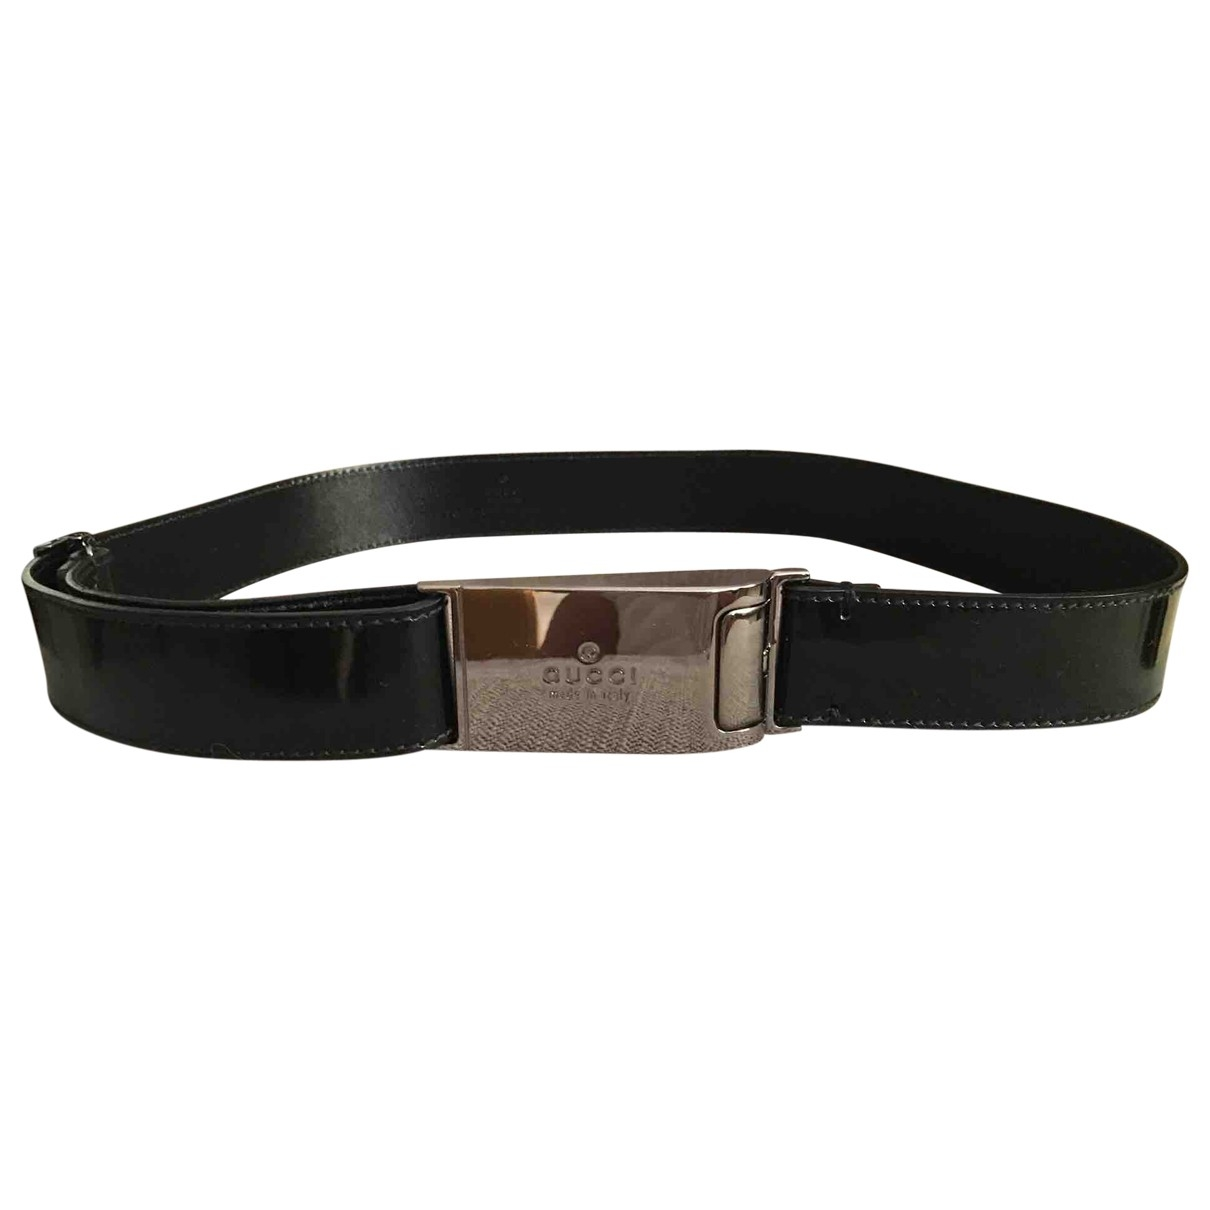 Gucci \N Black Patent leather belt for Women 70 cm